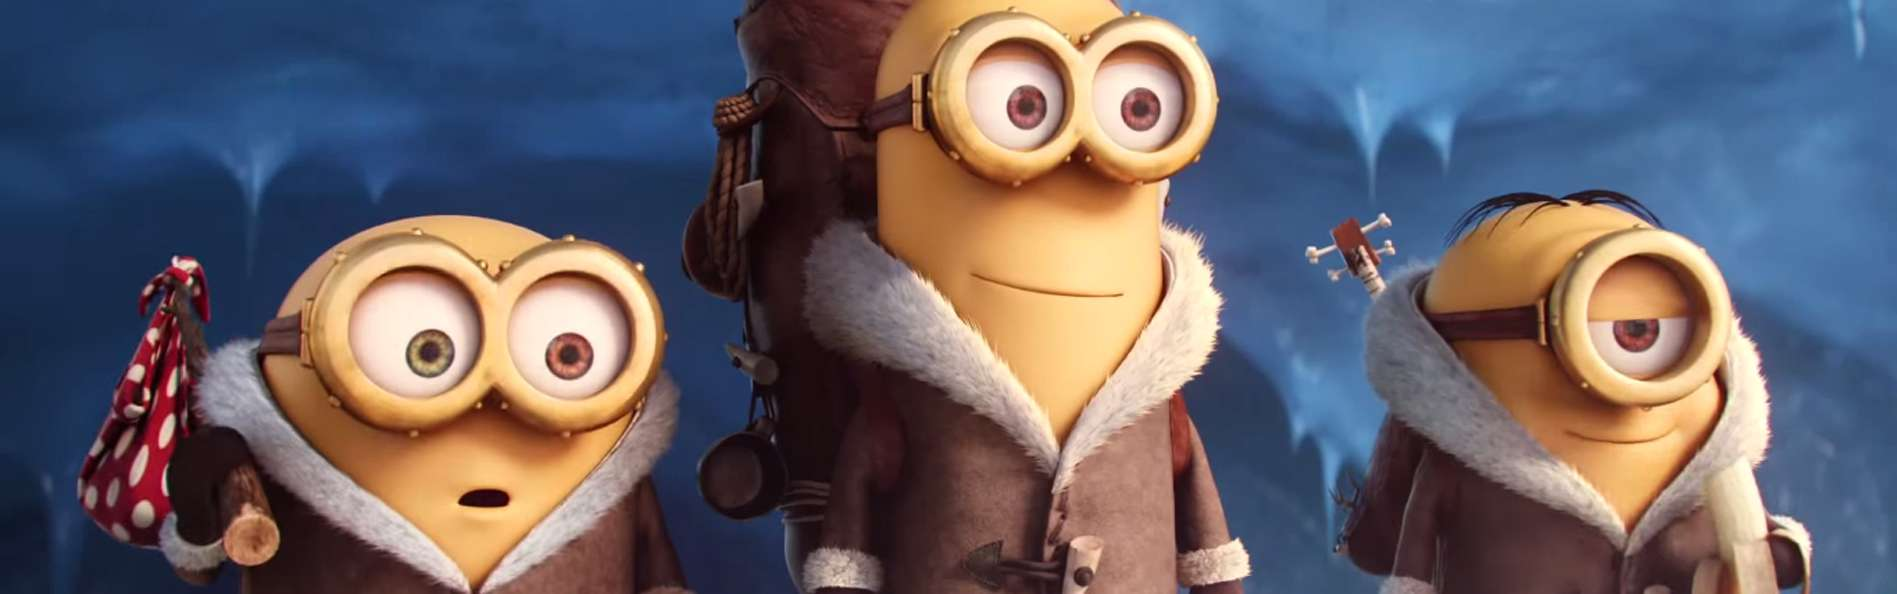 'Minions'. Foto: Universal Pictures